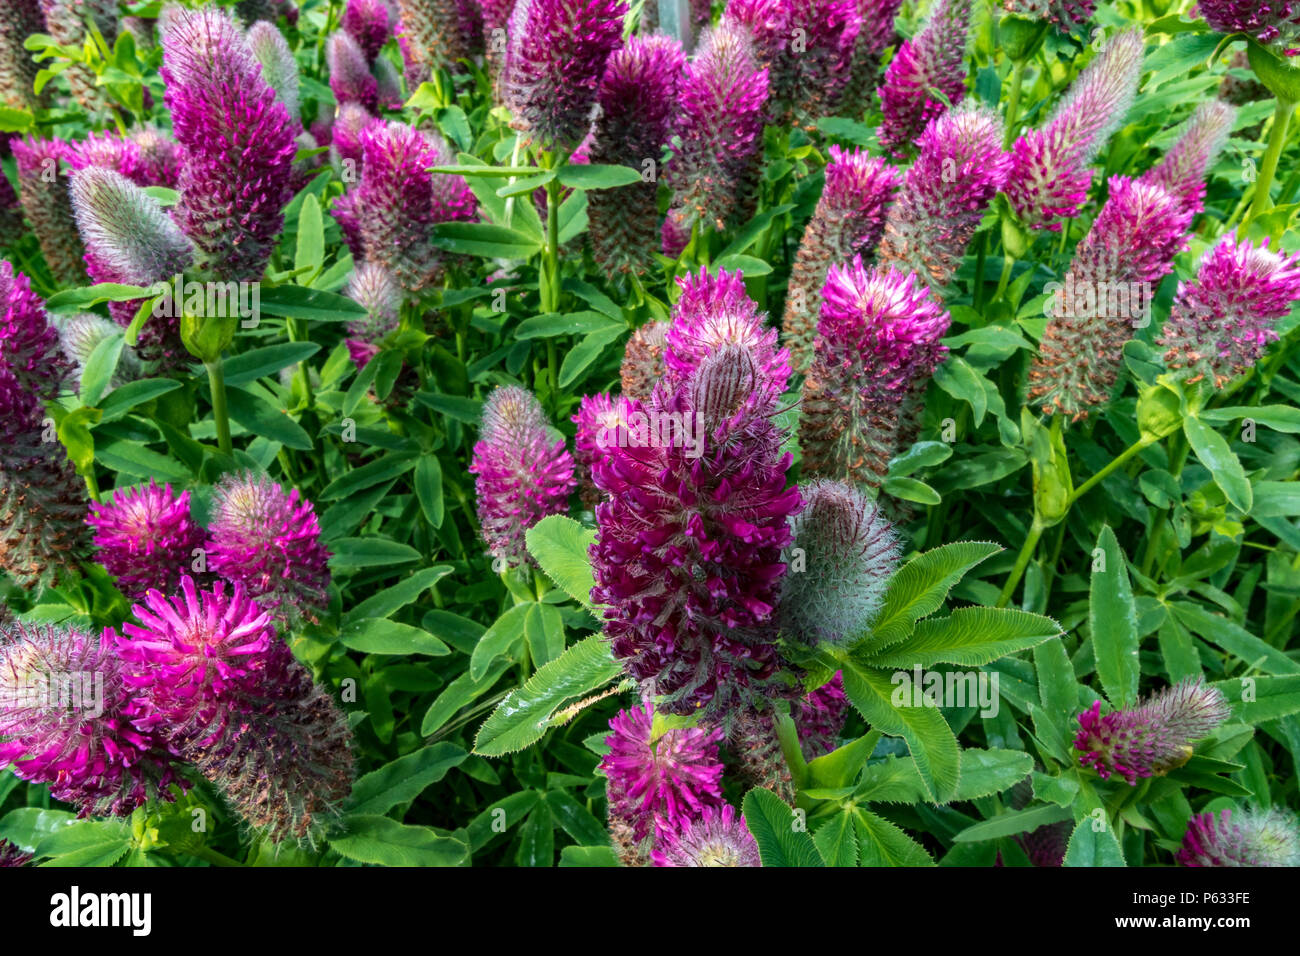 Red feathered clover , Trifolium rubens  a beautiful ornamental clover that attracts butterflies and bees with soft brush like mauve flowers - Stock Image